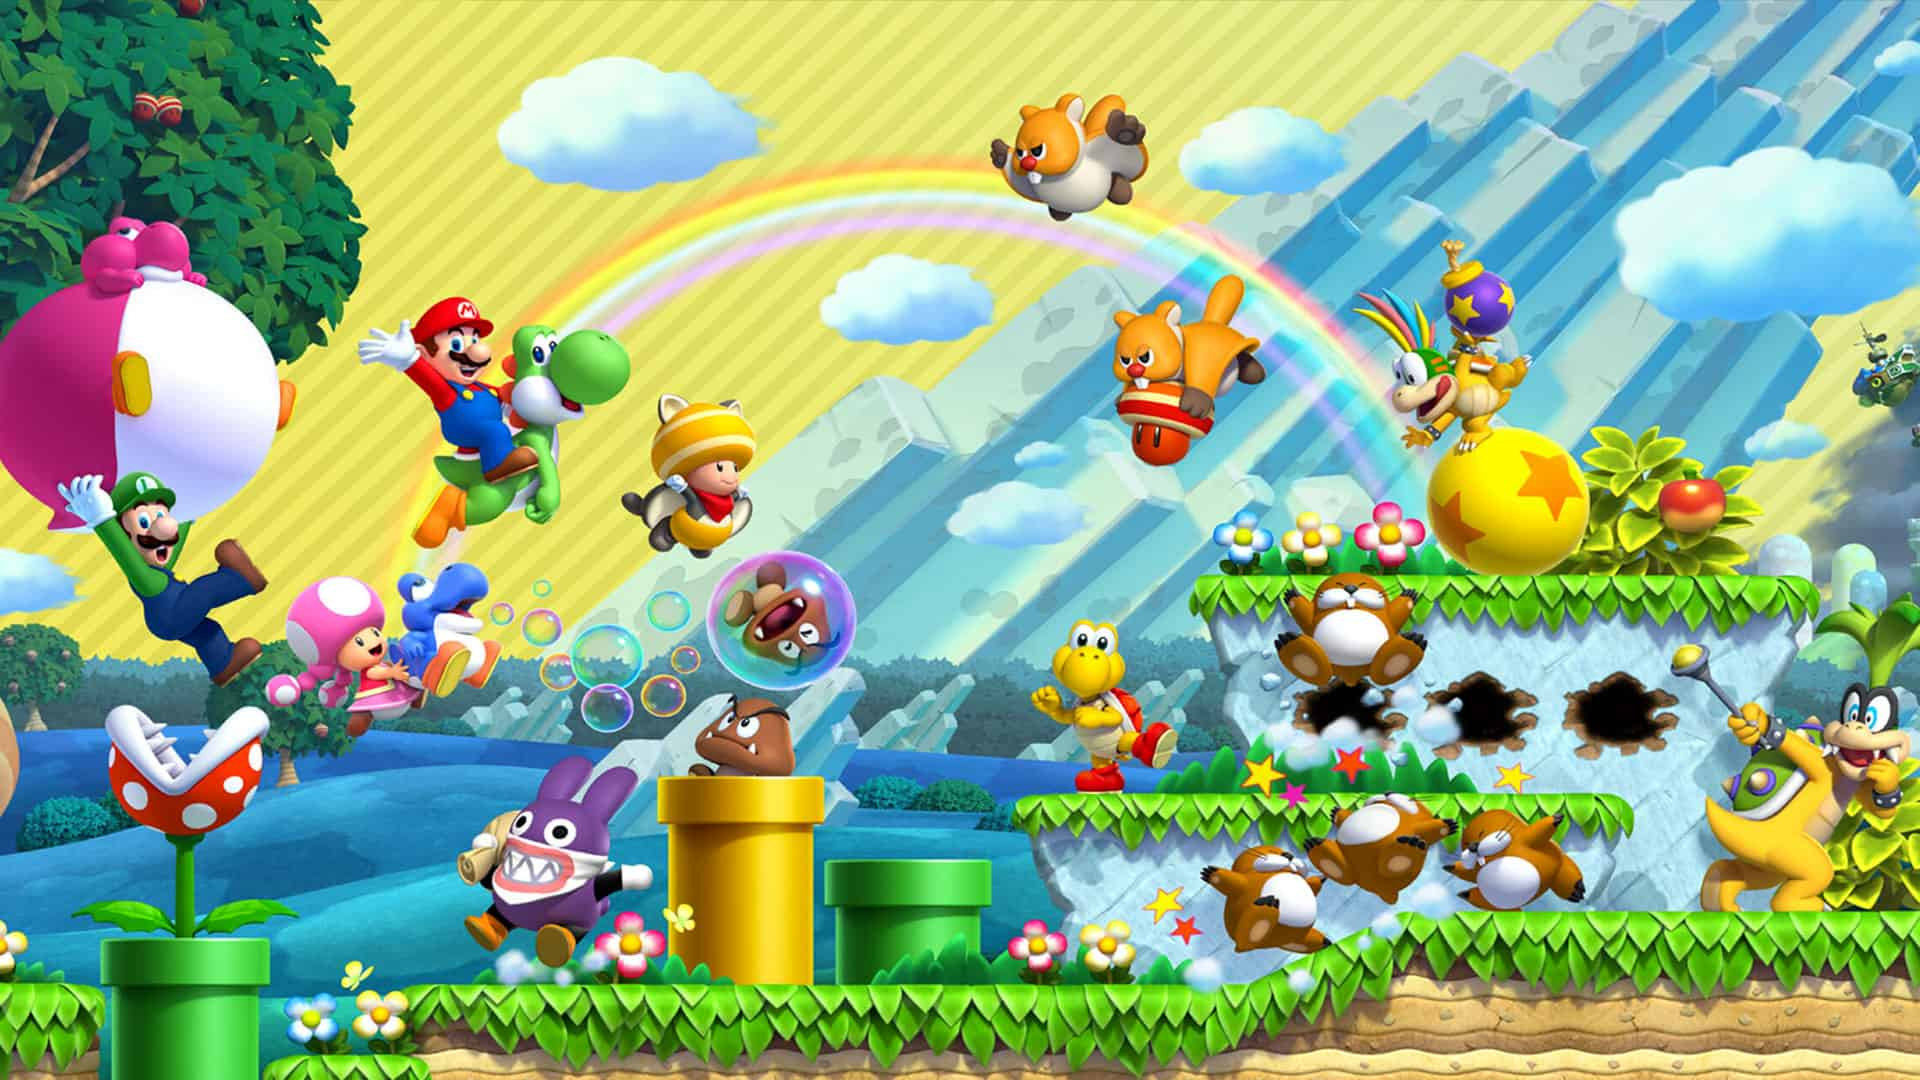 New Super Mario Bros U Deluxe characters wallpaper 166 1920x1080